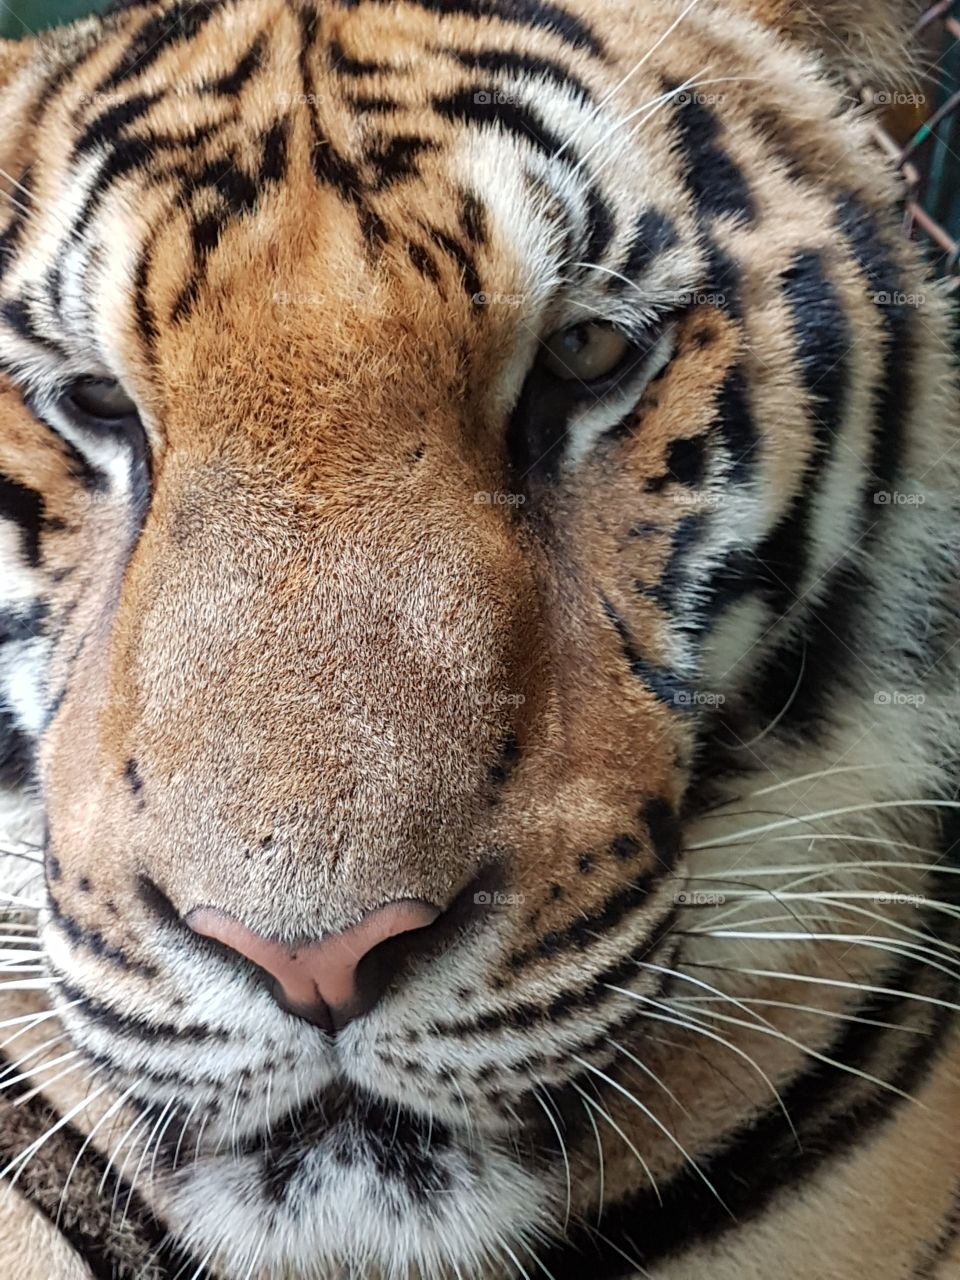 Bangal Tigers are such a beautiful and Majestic creature. Never before have i offered my self up for lunch lol to get this close for a photo.